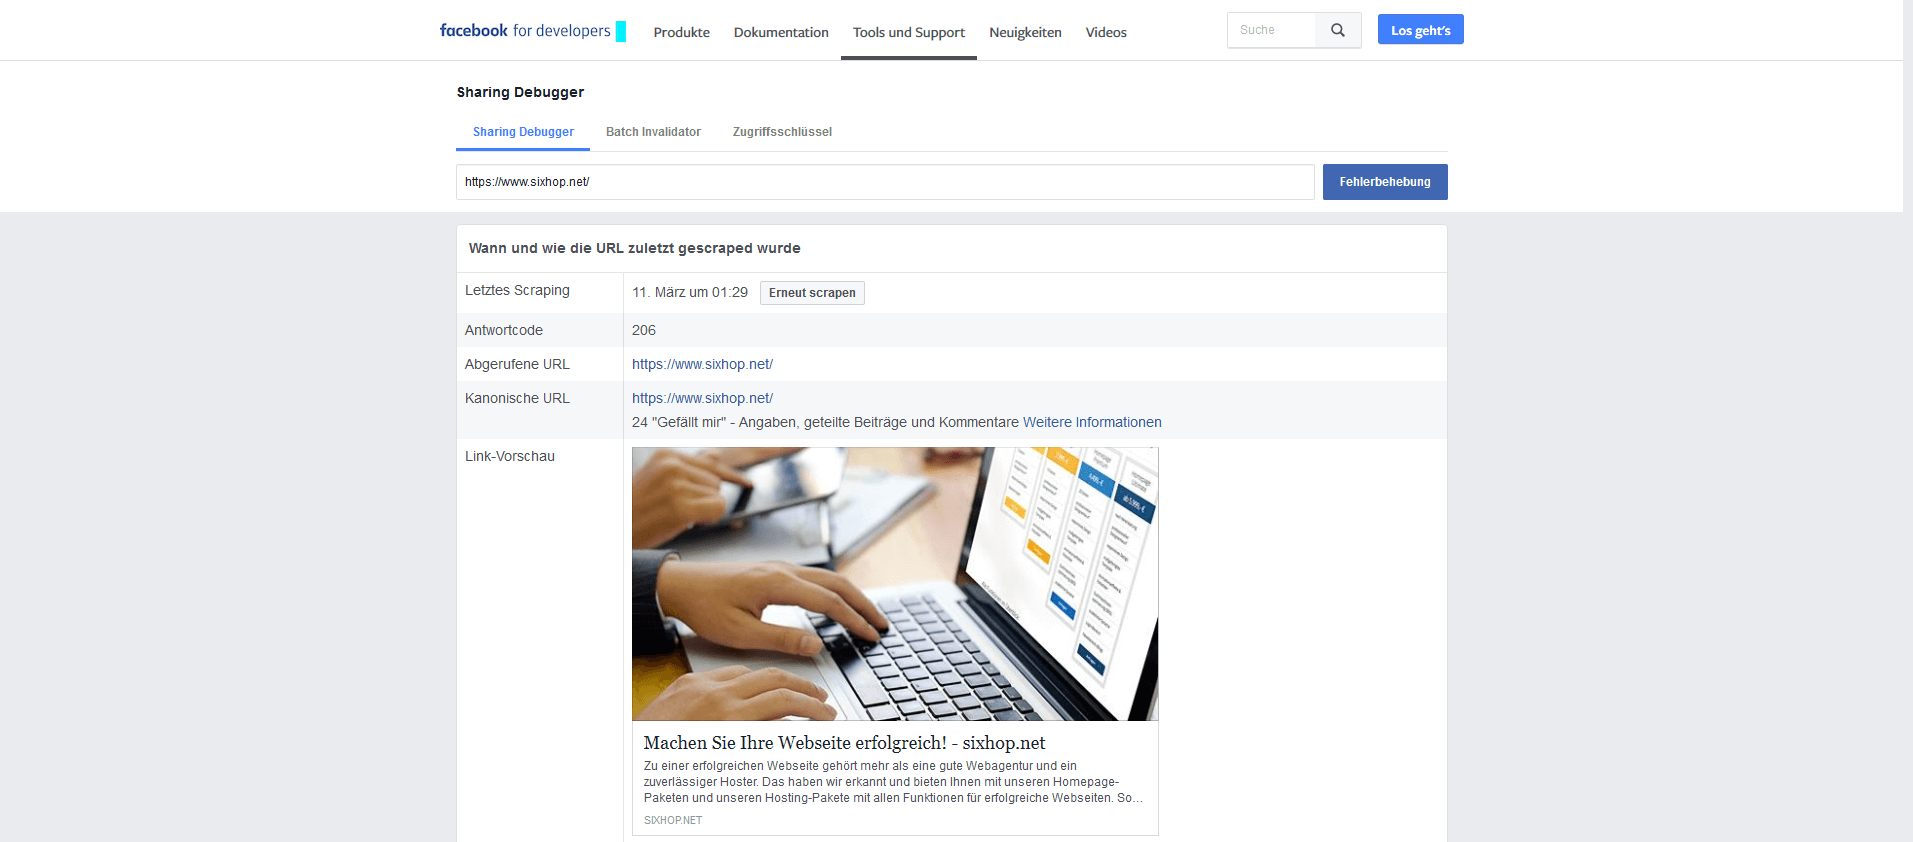 Facebook Developer Link Vorschau